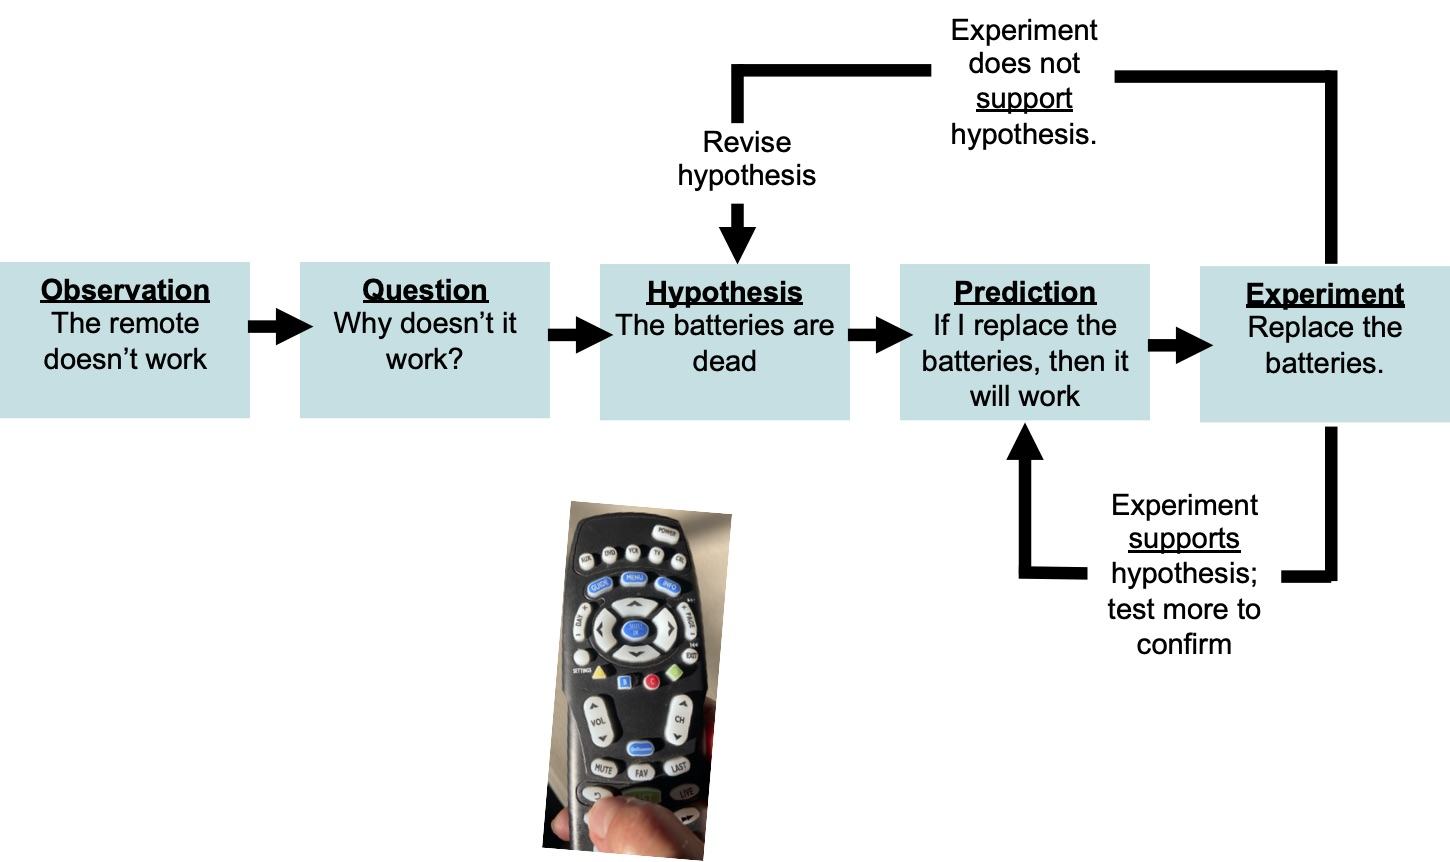 The picture shows application of scientific method in solving a common problem to test why your remote control doesn't work. The remote control example shows a series of steps from observation, question, hypothesis, prediction and the experiment. If the result of the experiment is similar to the hypothesis proposed then the hypothesis is supported and has to be repeated to confirm. If the result does not come according to the hypothesis then it is needed to propose another hypothesis.